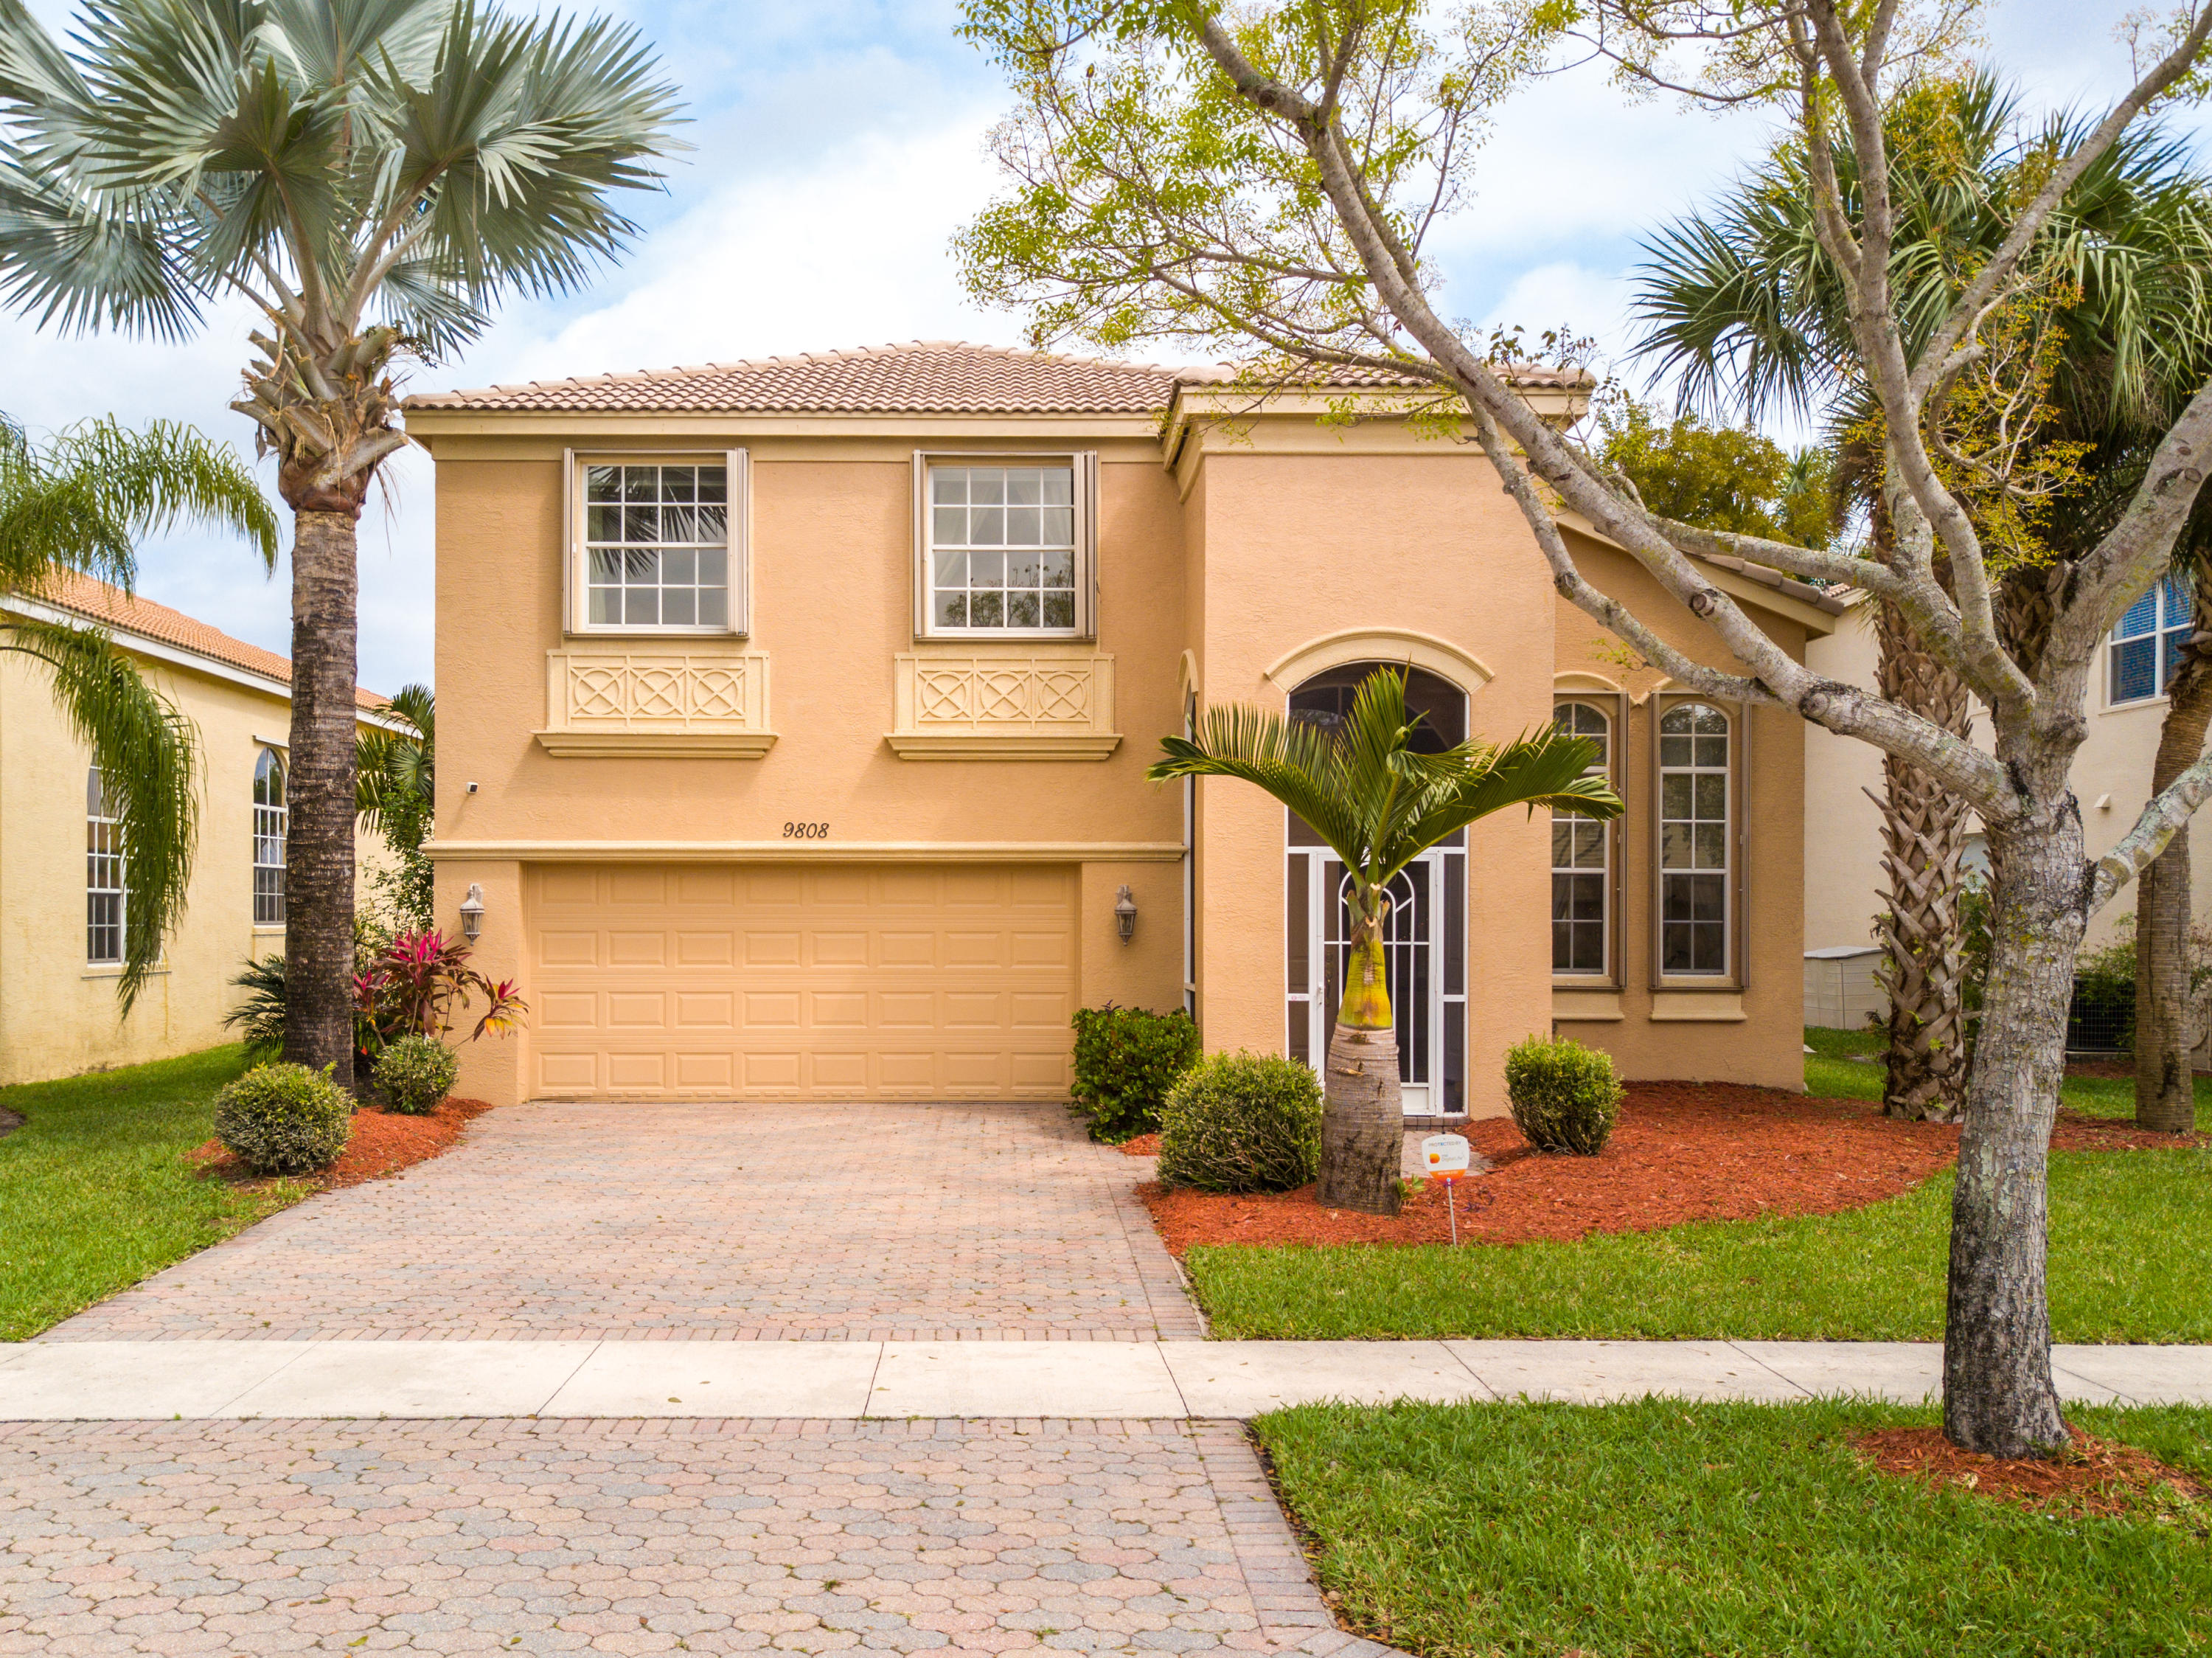 9808 Stover Way, Wellington, FL 33414